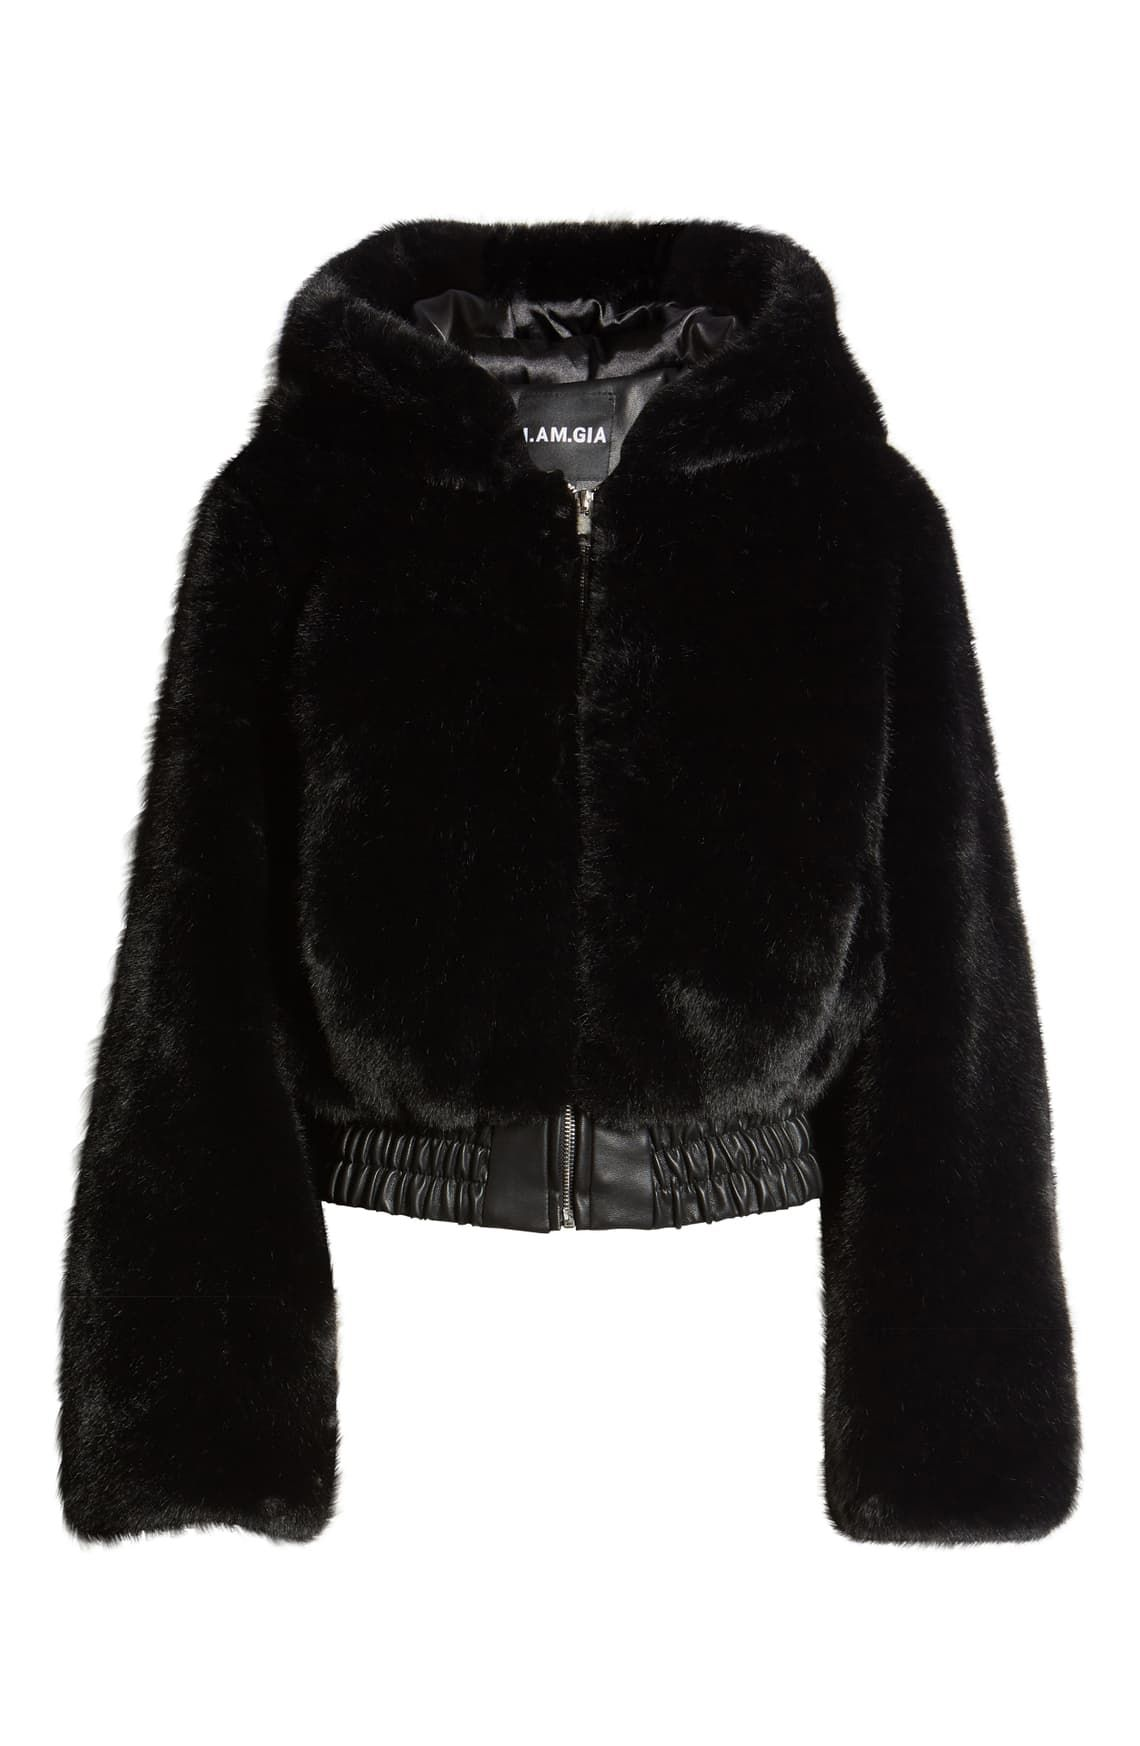 I.AM.GIA. Hooded Crop Faux Fur Jacket Nordstrom Faux